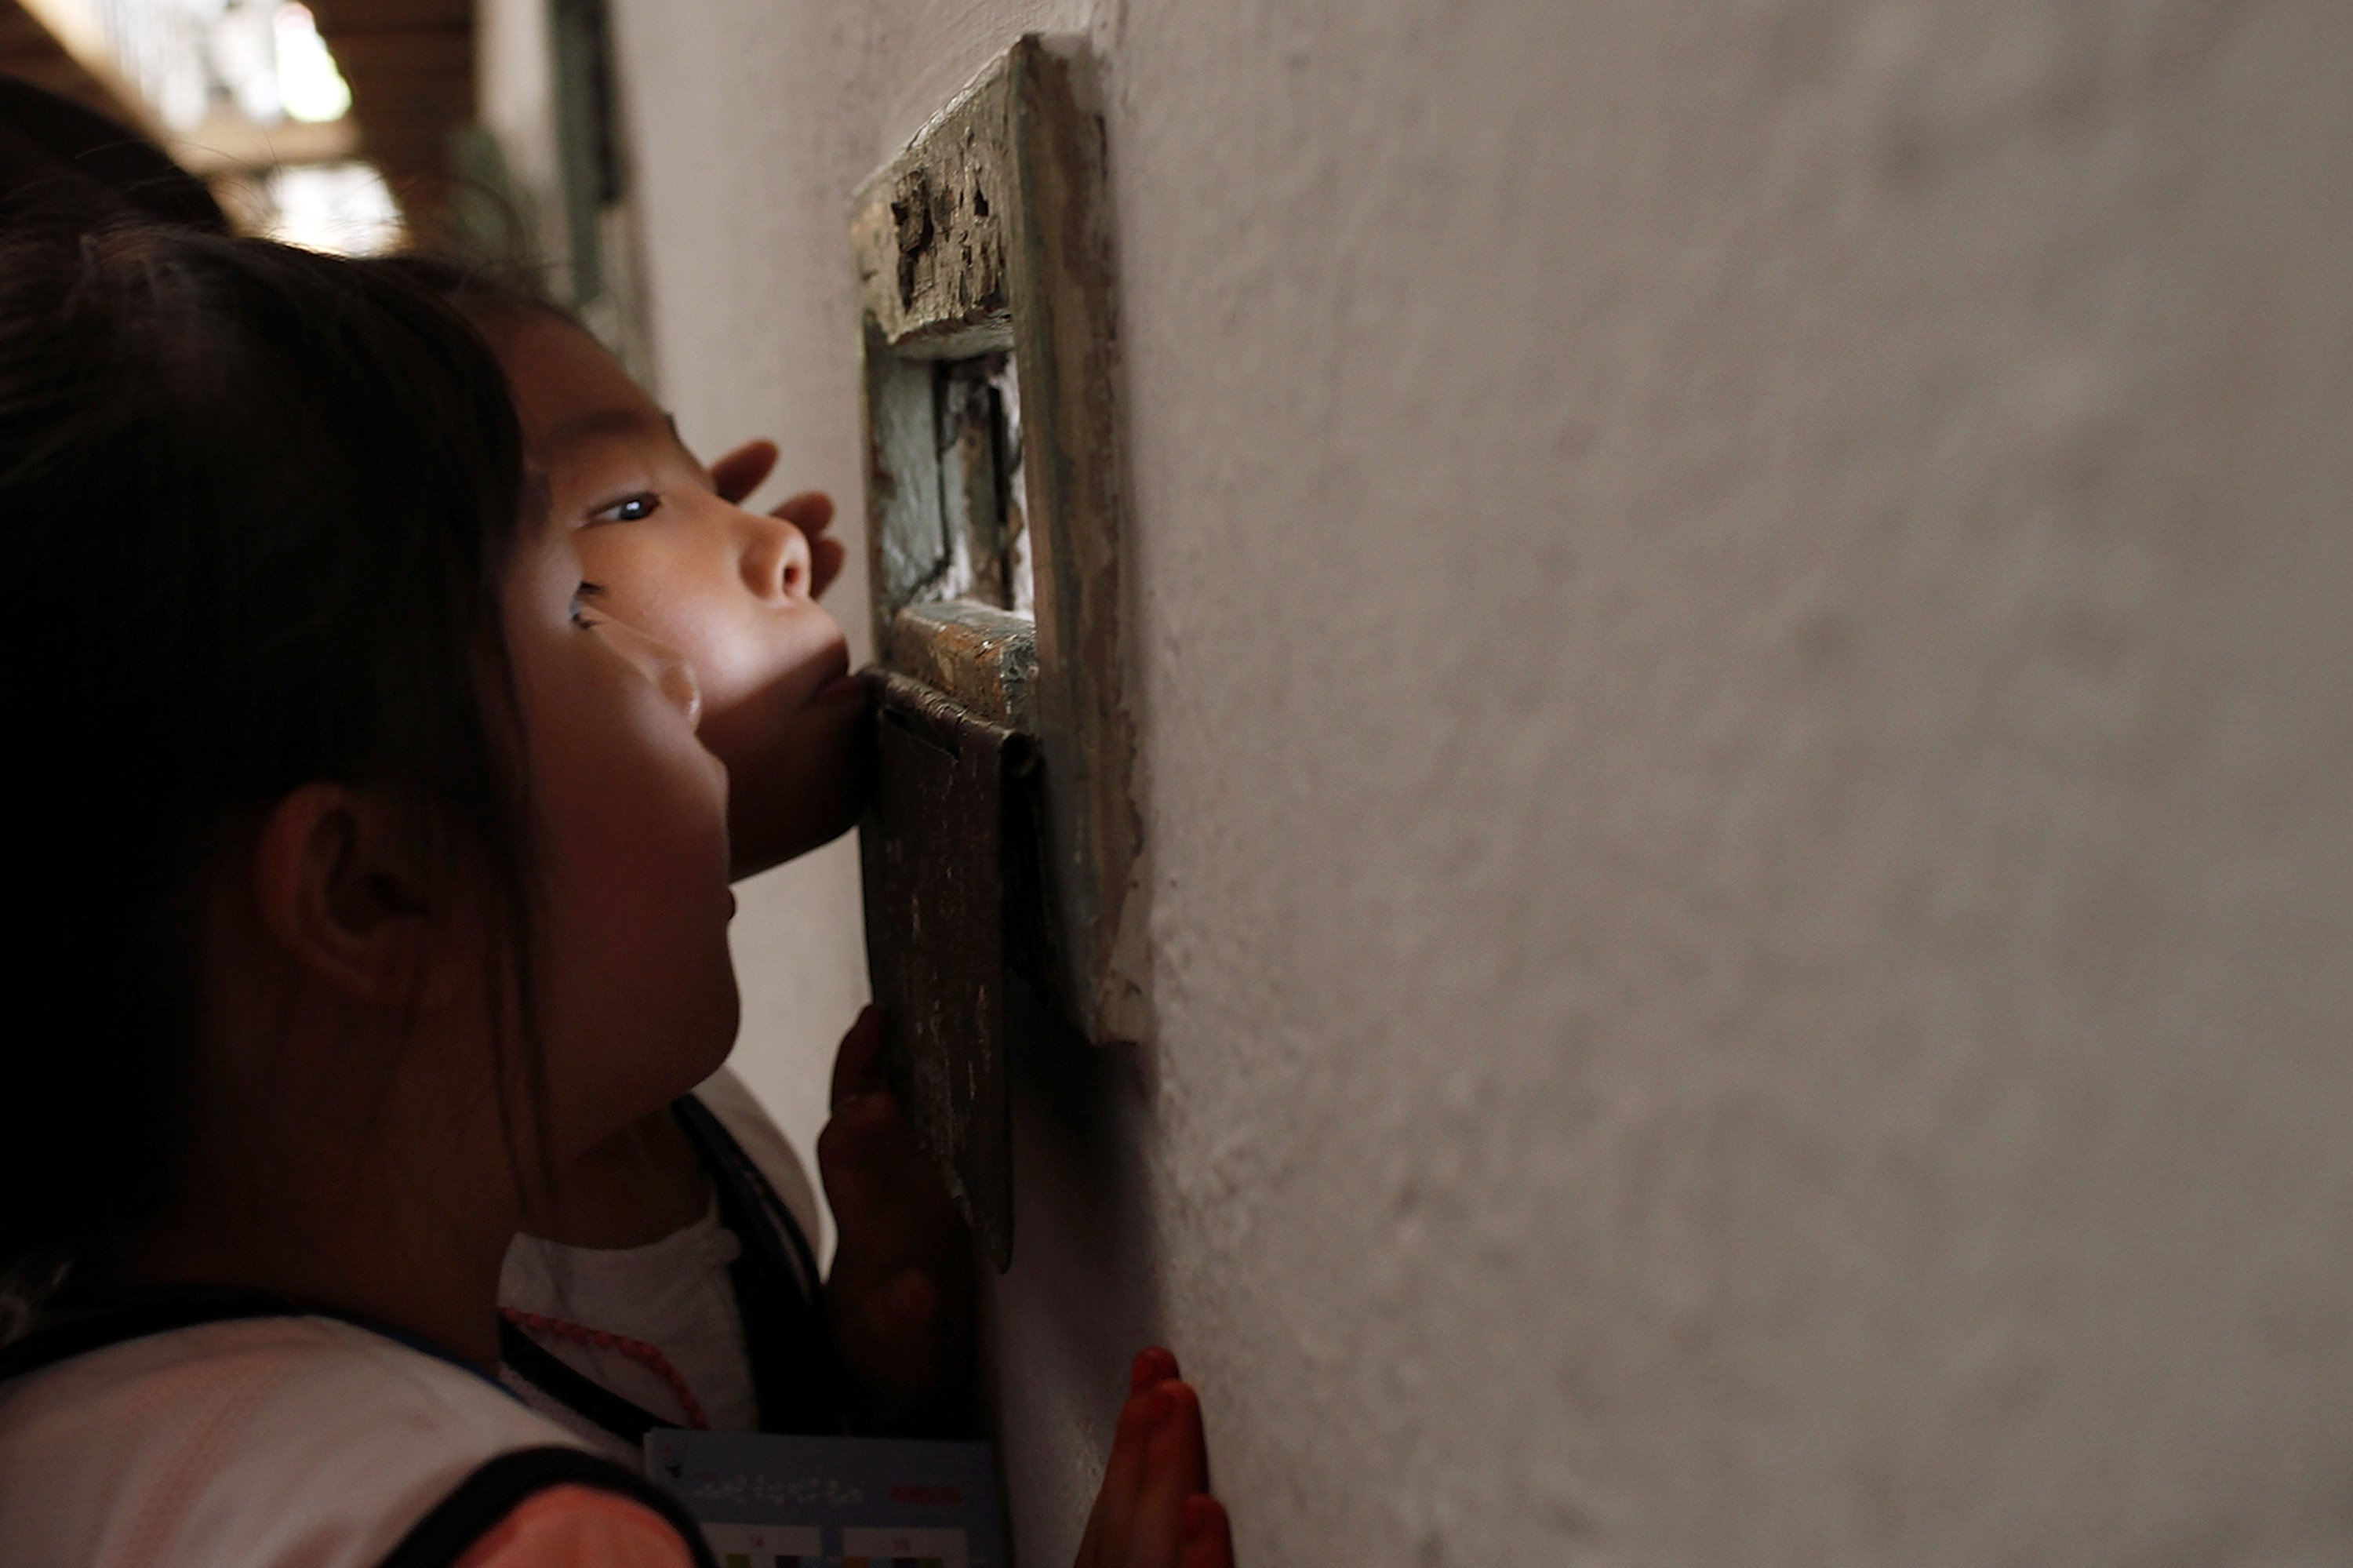 Children look around cells at Seodaemun Prison, the former prison used to lock Independent fighters from 1908, on August 15, 2016 in Seoul, South Korea.